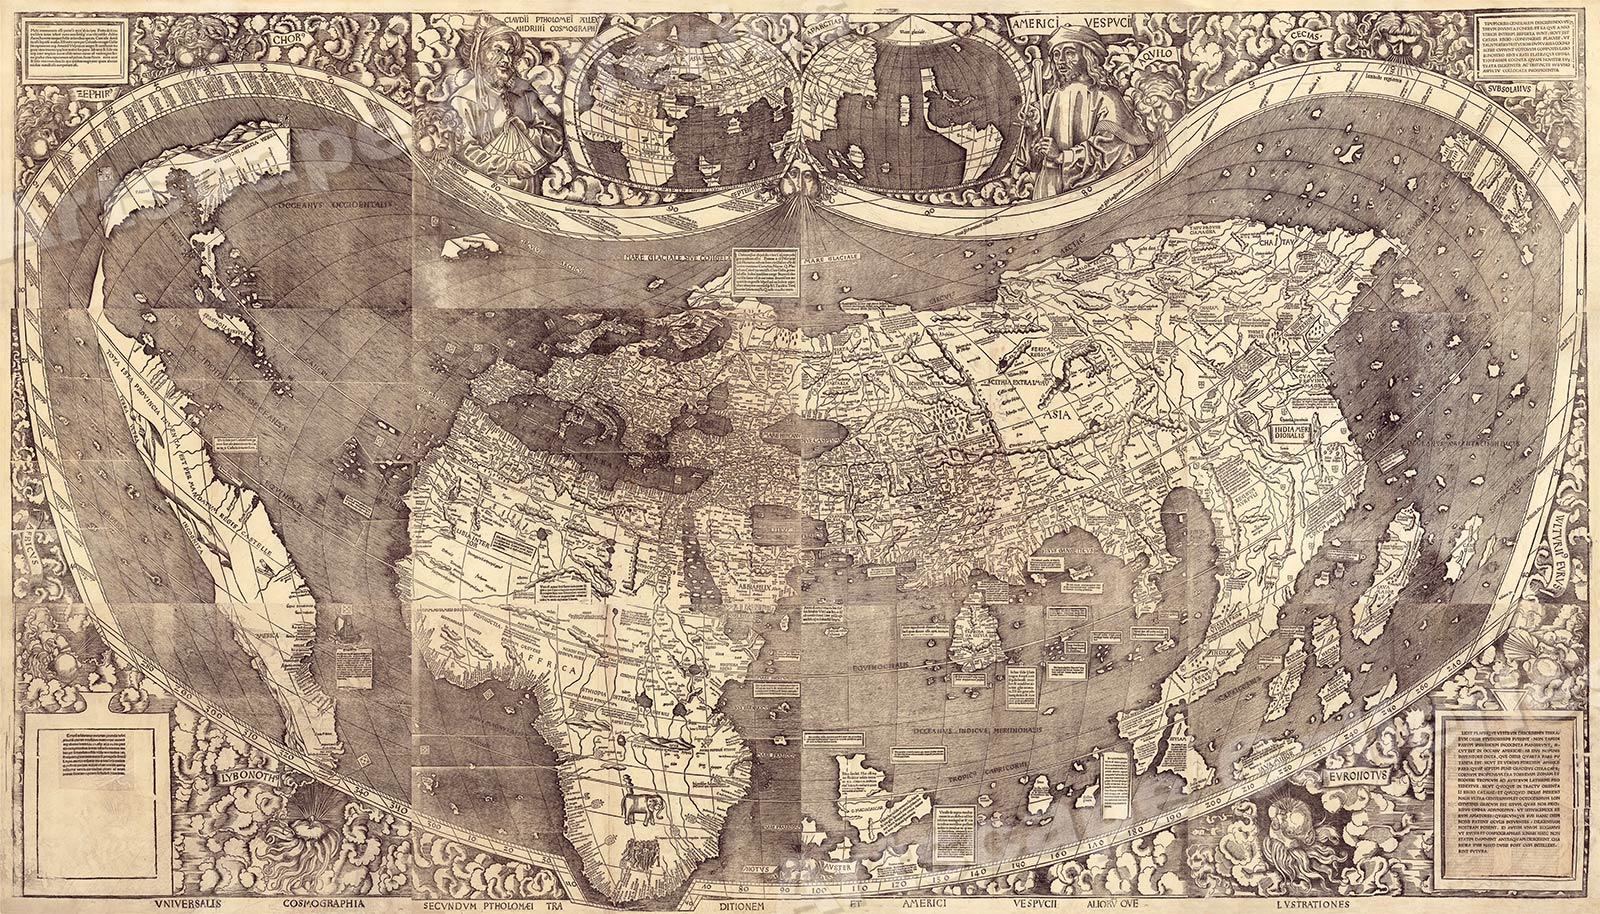 First Map Of America 1500s Waldseemuller Map of America   First Map to Name